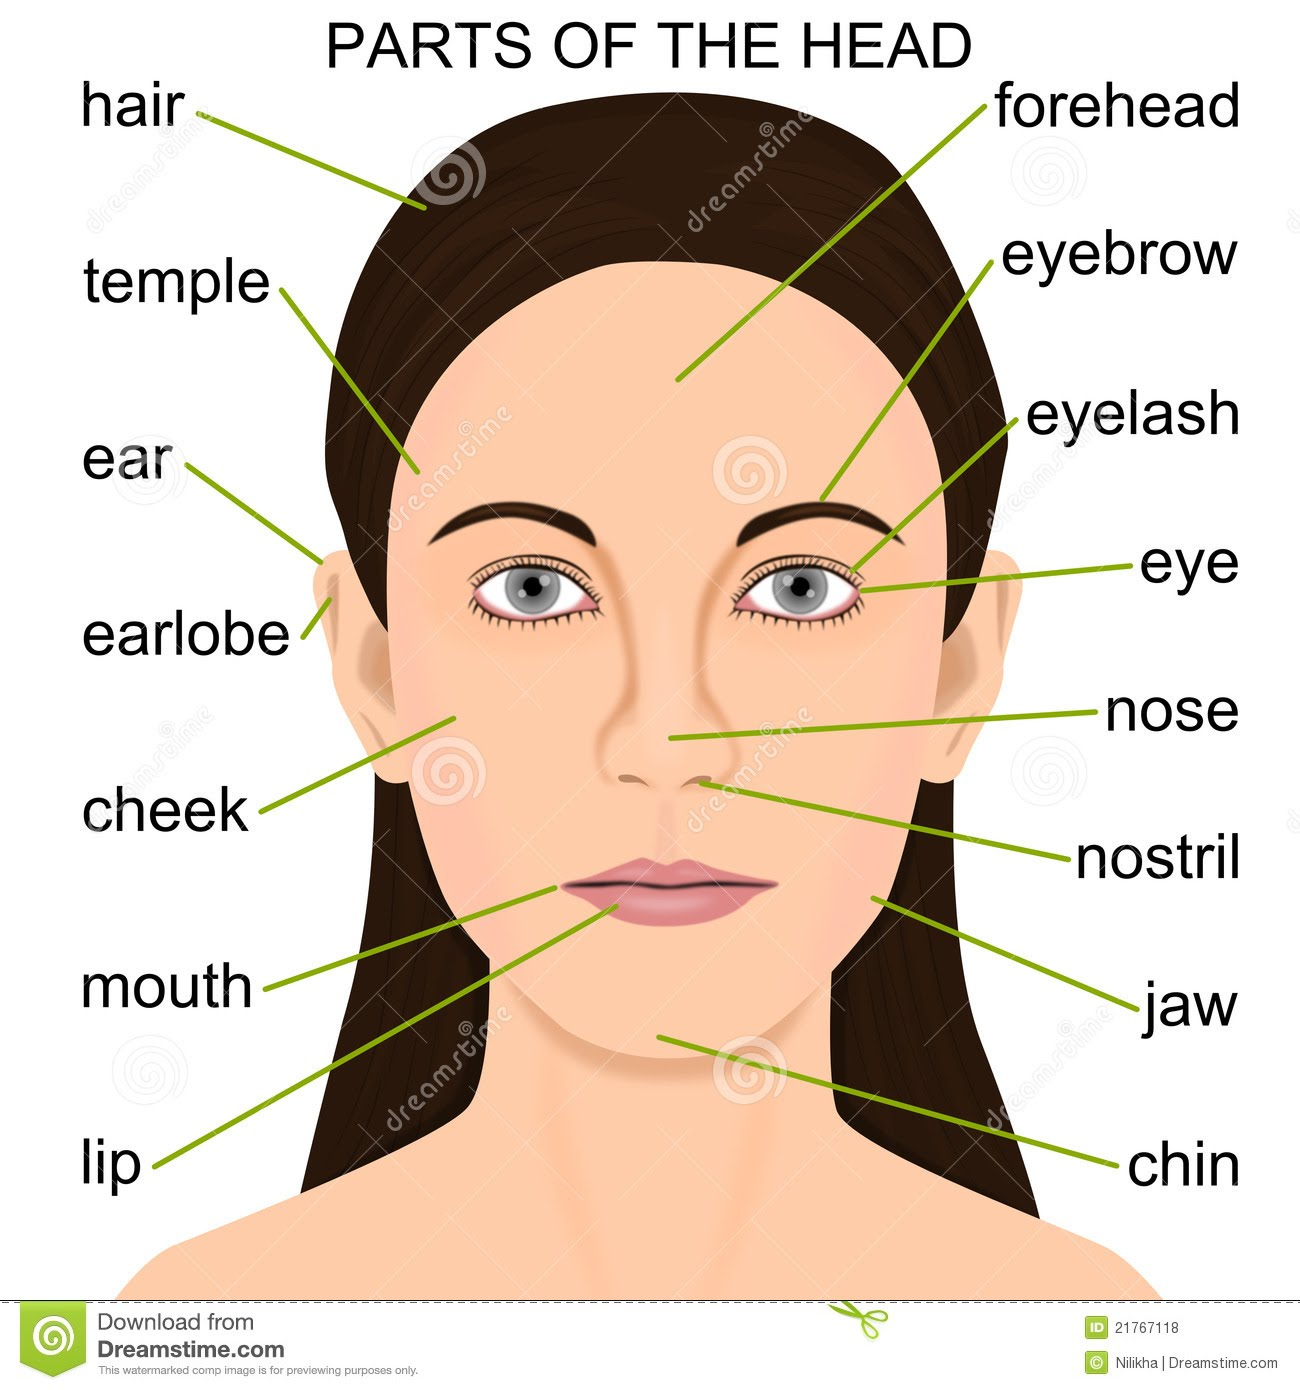 Die Gesichtsteile - Parts of the face/head Flashcards ...